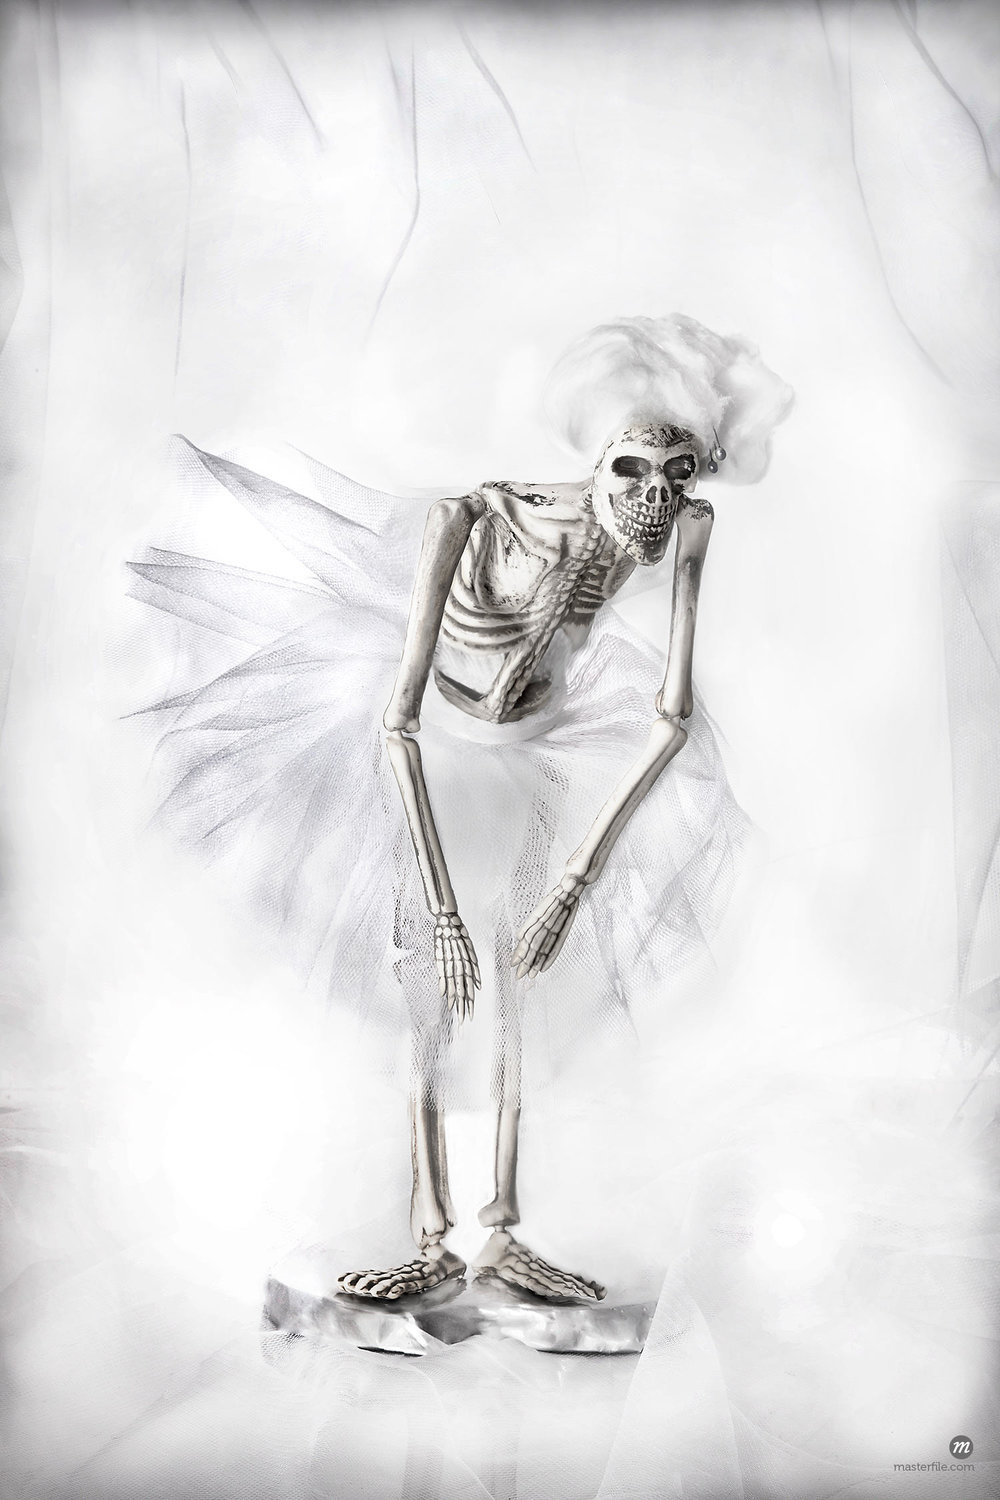 Skeleton ballet dancer © Siephoto / Masterfile